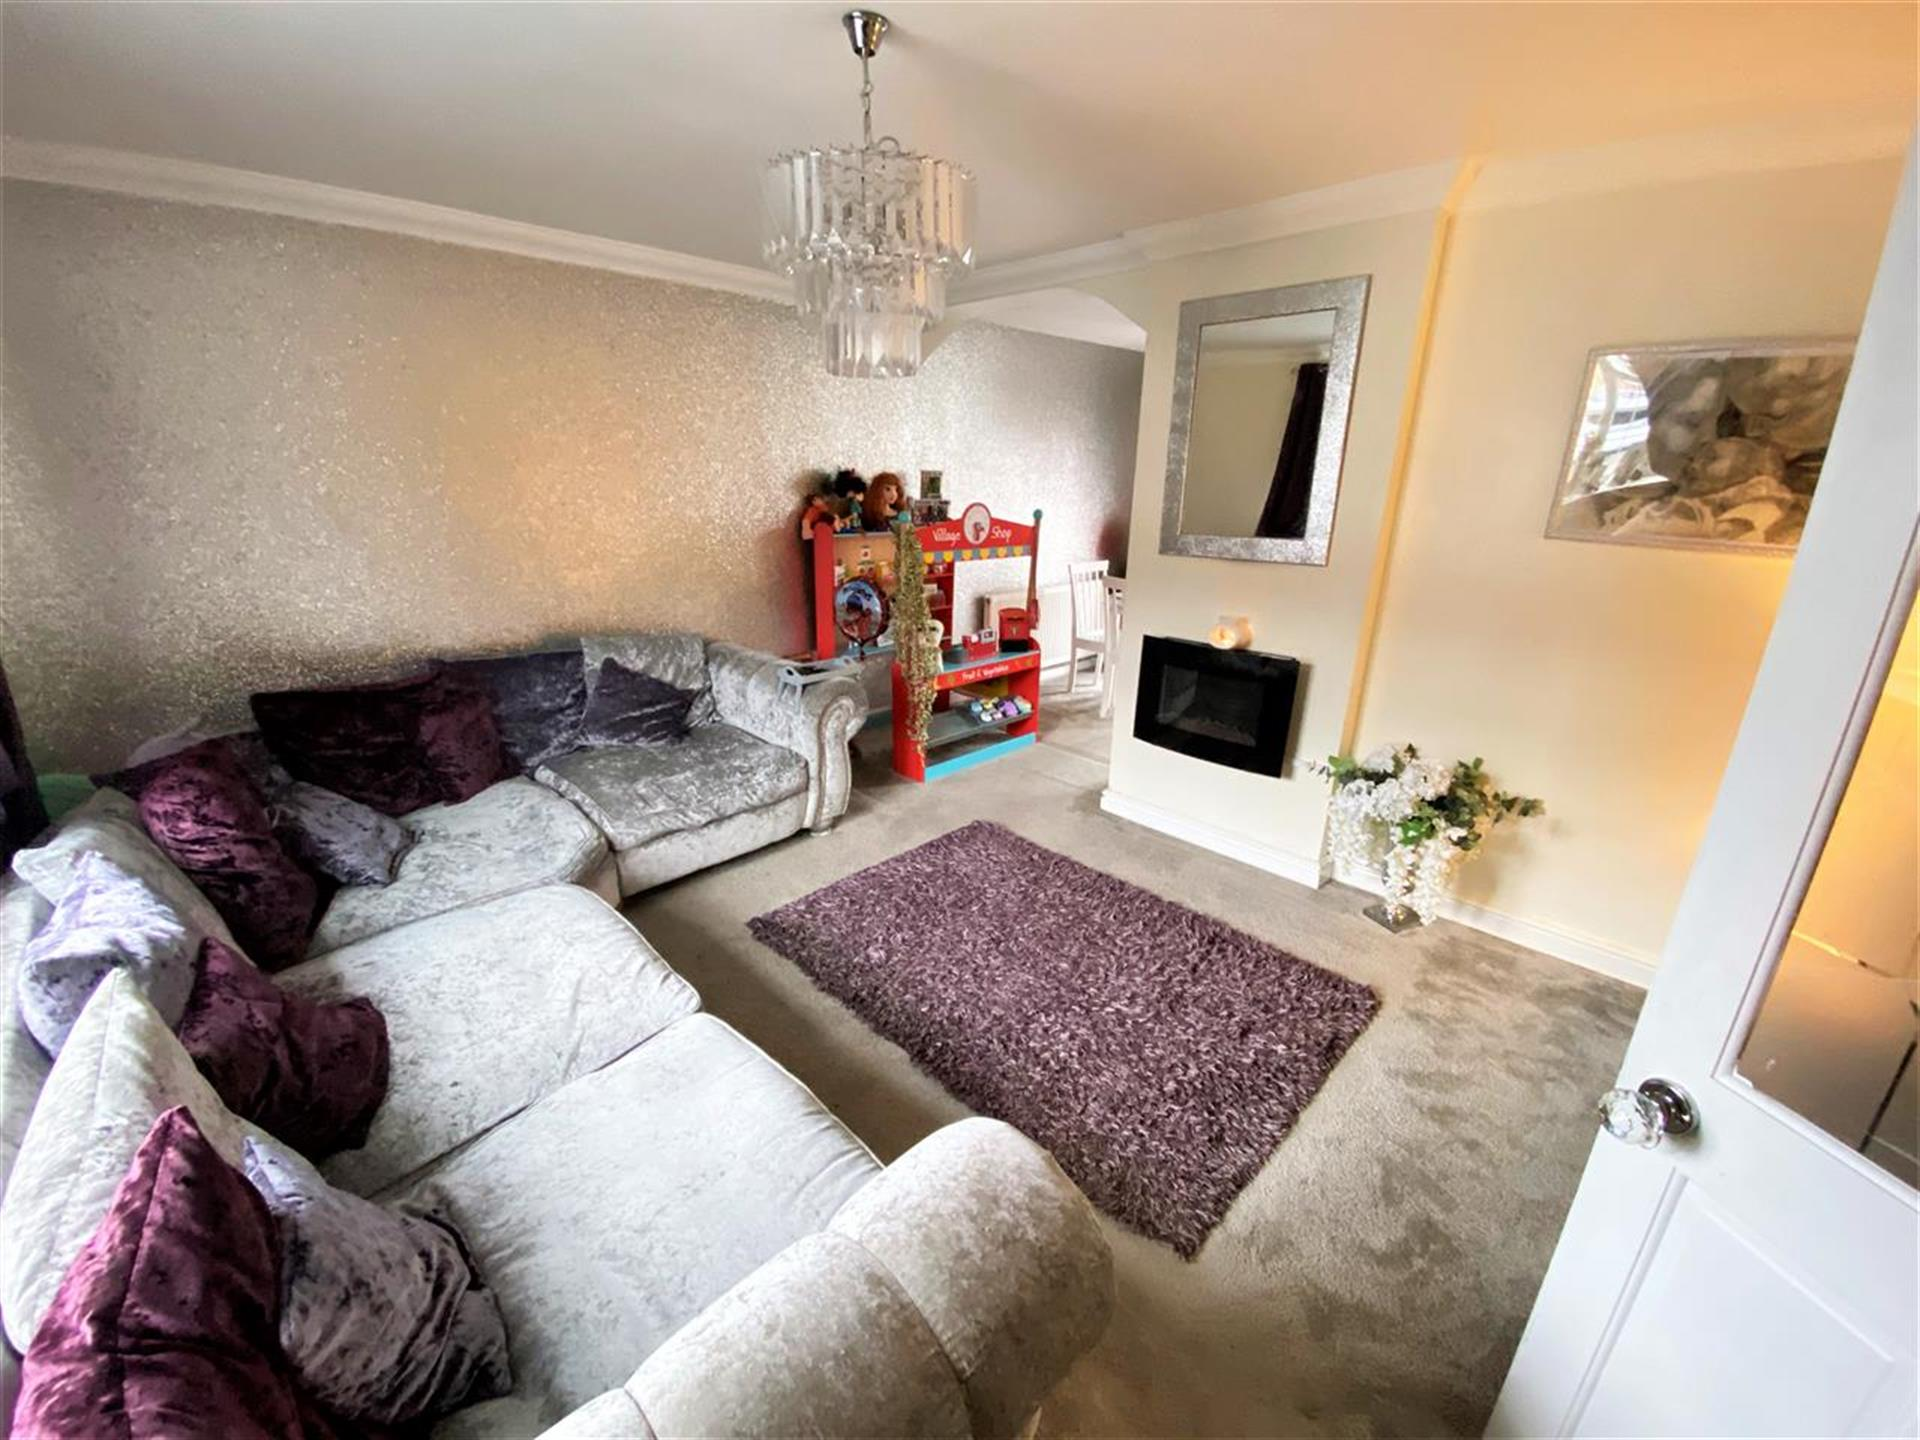 4 Bedroom Terraced House For Sale - Image 2